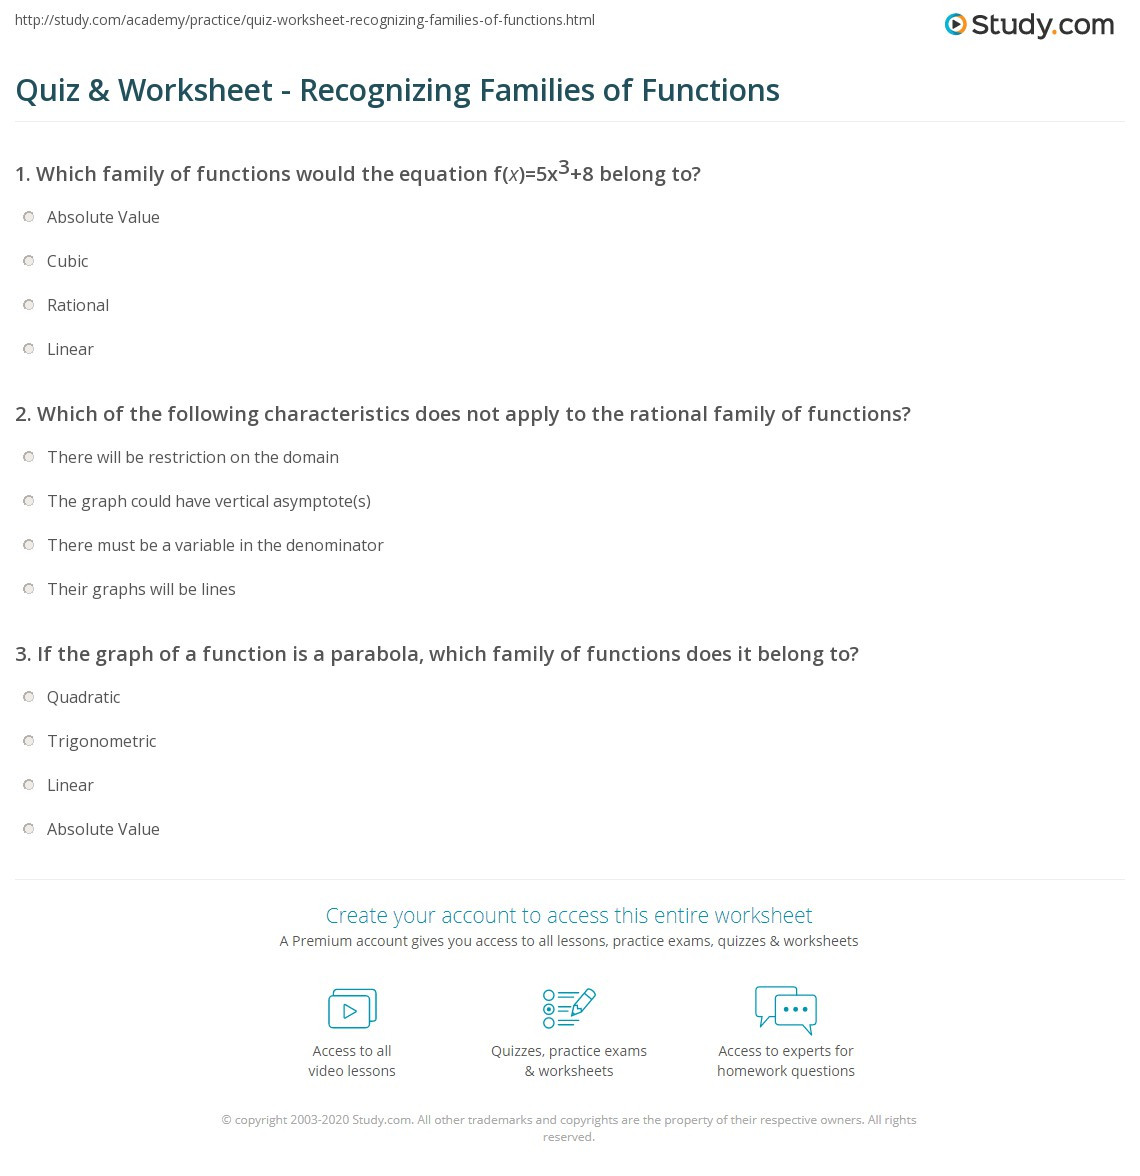 Quiz & Worksheet Recognizing Families of Functions